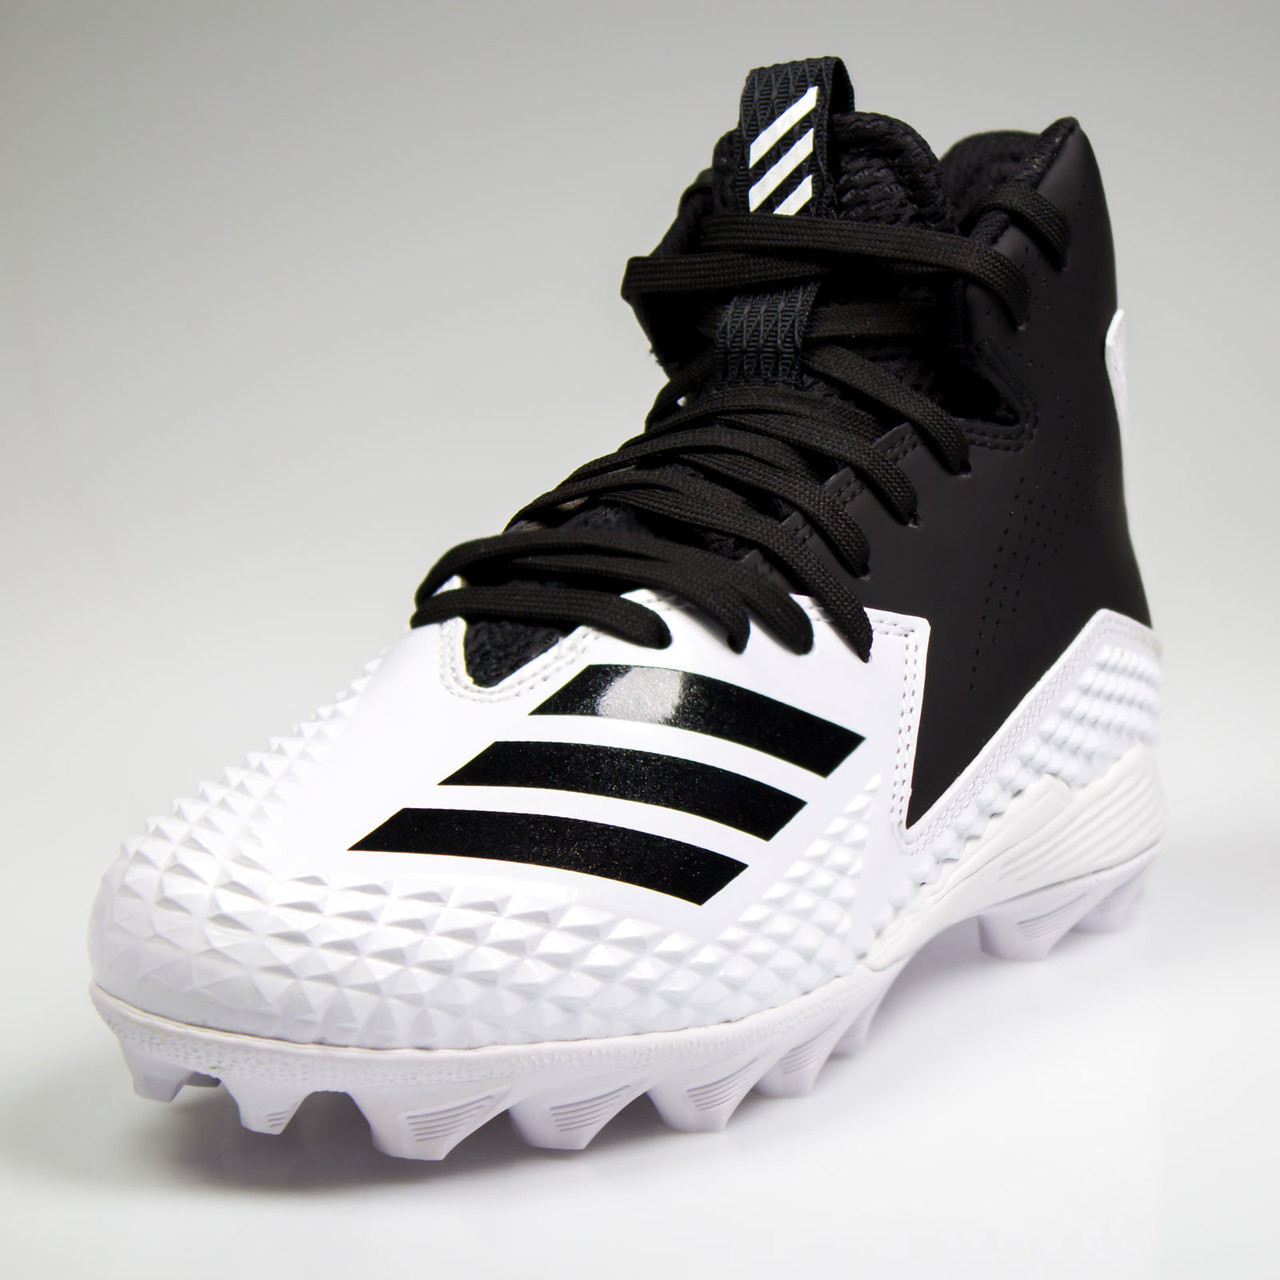 new products 08e5b 6c025 ... Adidas Freak Mid MD Junior Football  Lacrosse Cleats CG4460 ...